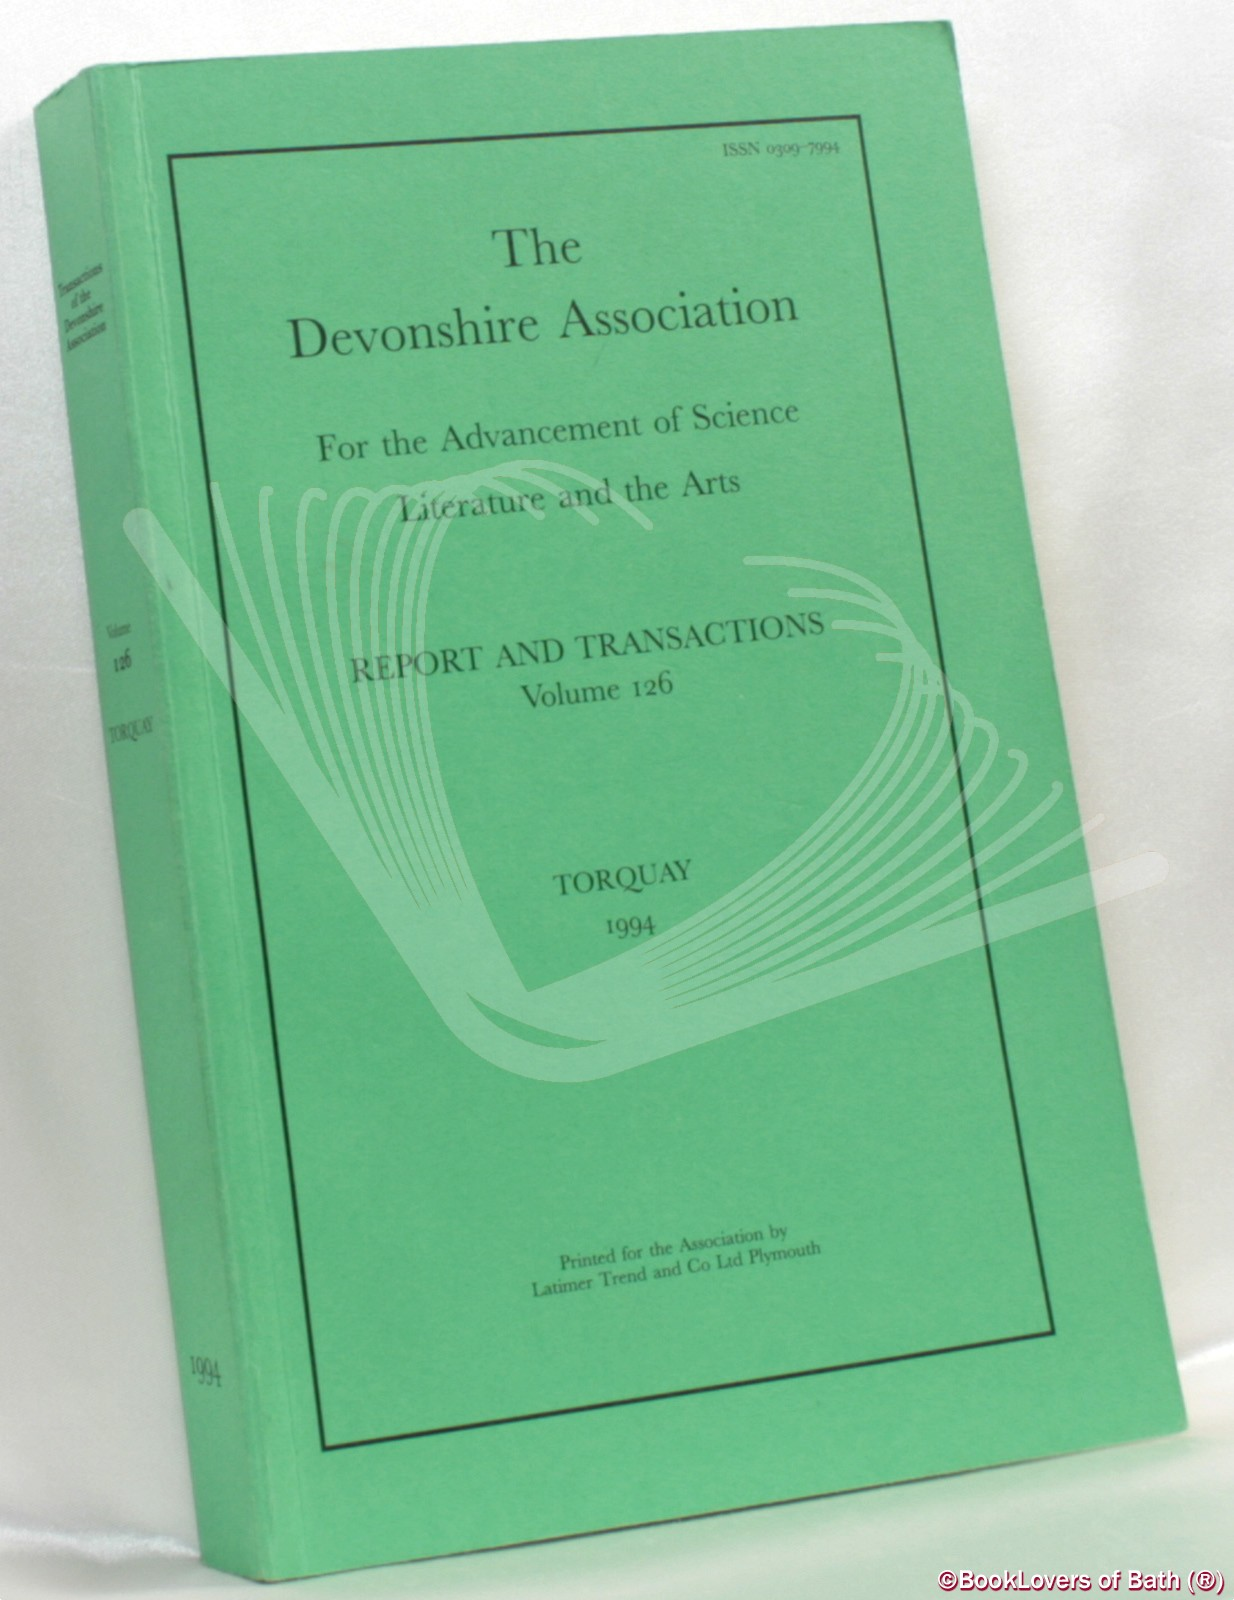 The Devonshire Association for the Advancement of Science Literature and The Arts Report & Transactions Volume 126 Torquay 1994 - Anon.